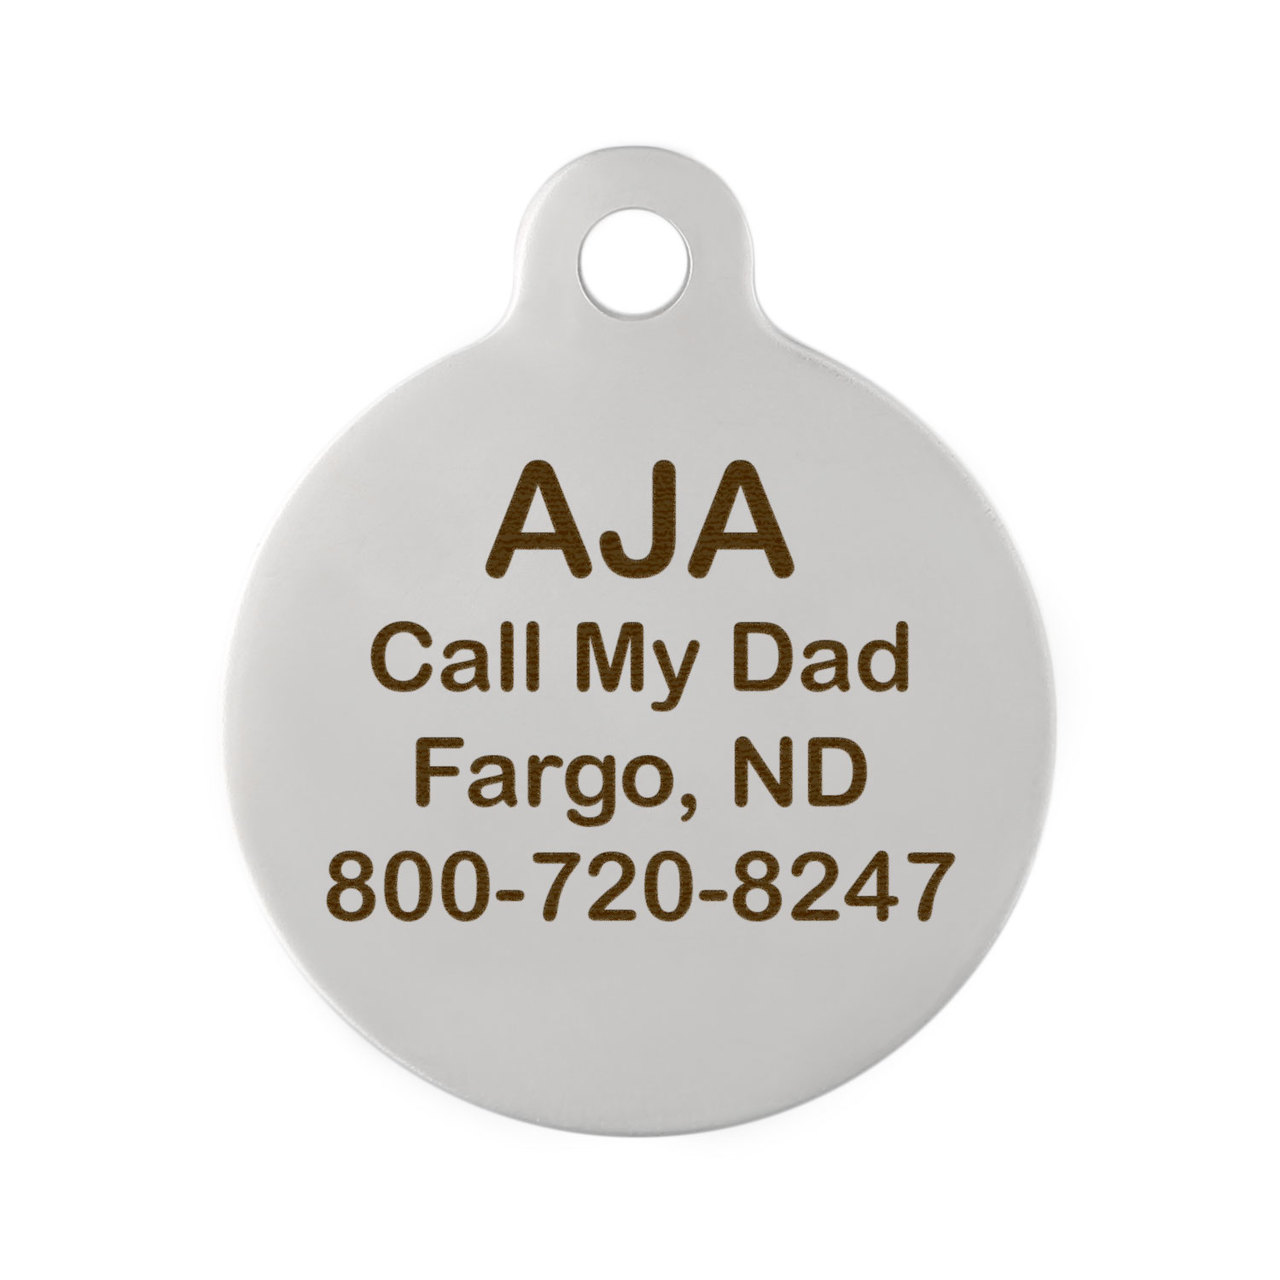 Arrow Design Dog Tag - Back on Stainless Steel